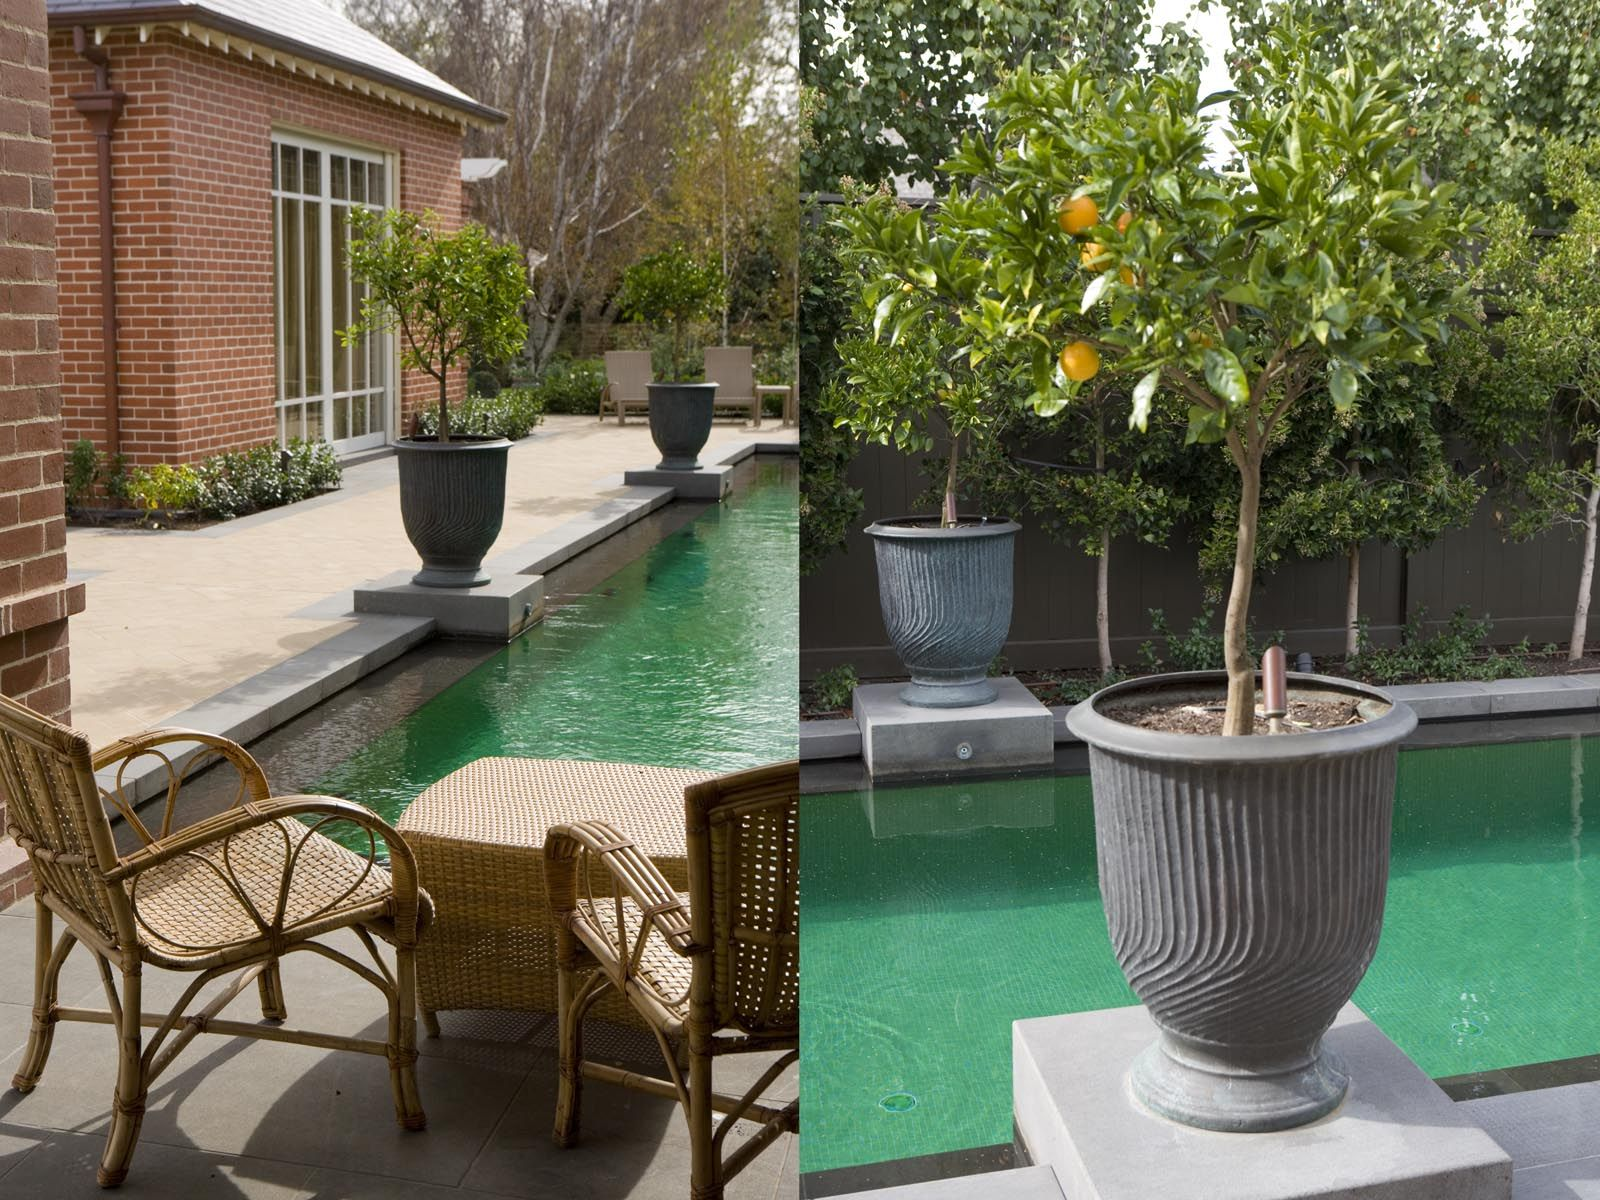 Landscape architects and garden designers on domain design directory - Find This Pin And More On Paul Bangay By Giersch